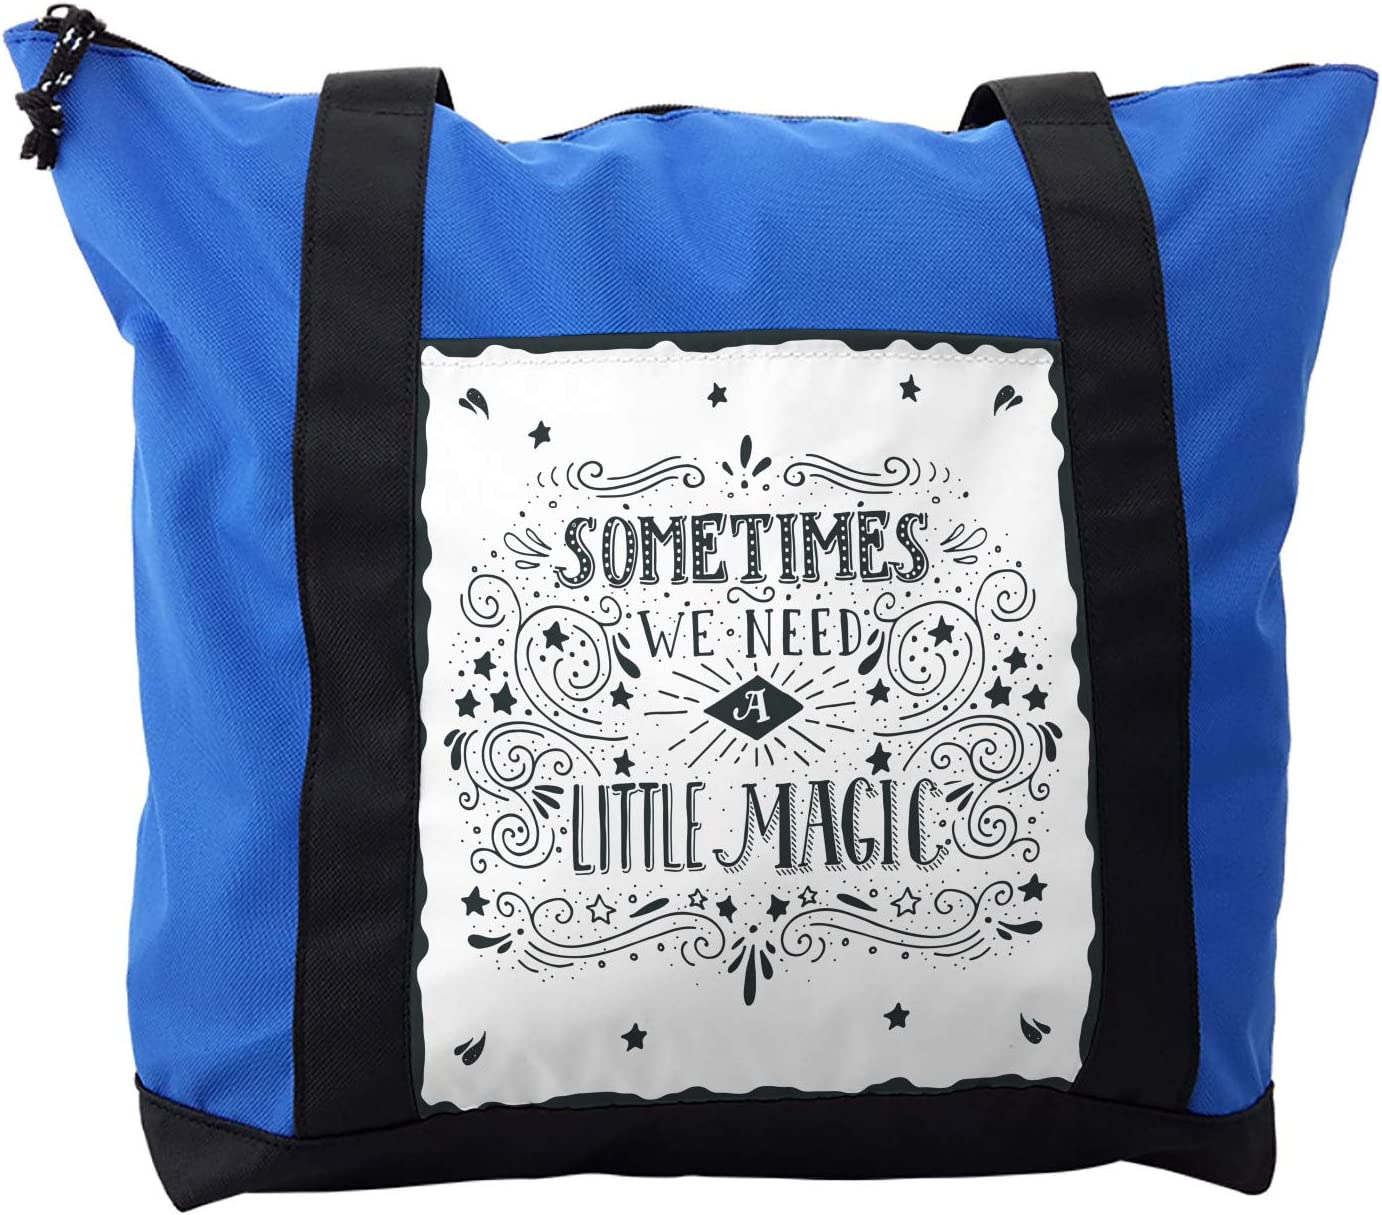 Lunarable Saying Shoulder Bag, We Need a Little Magic, Durable with Zipper